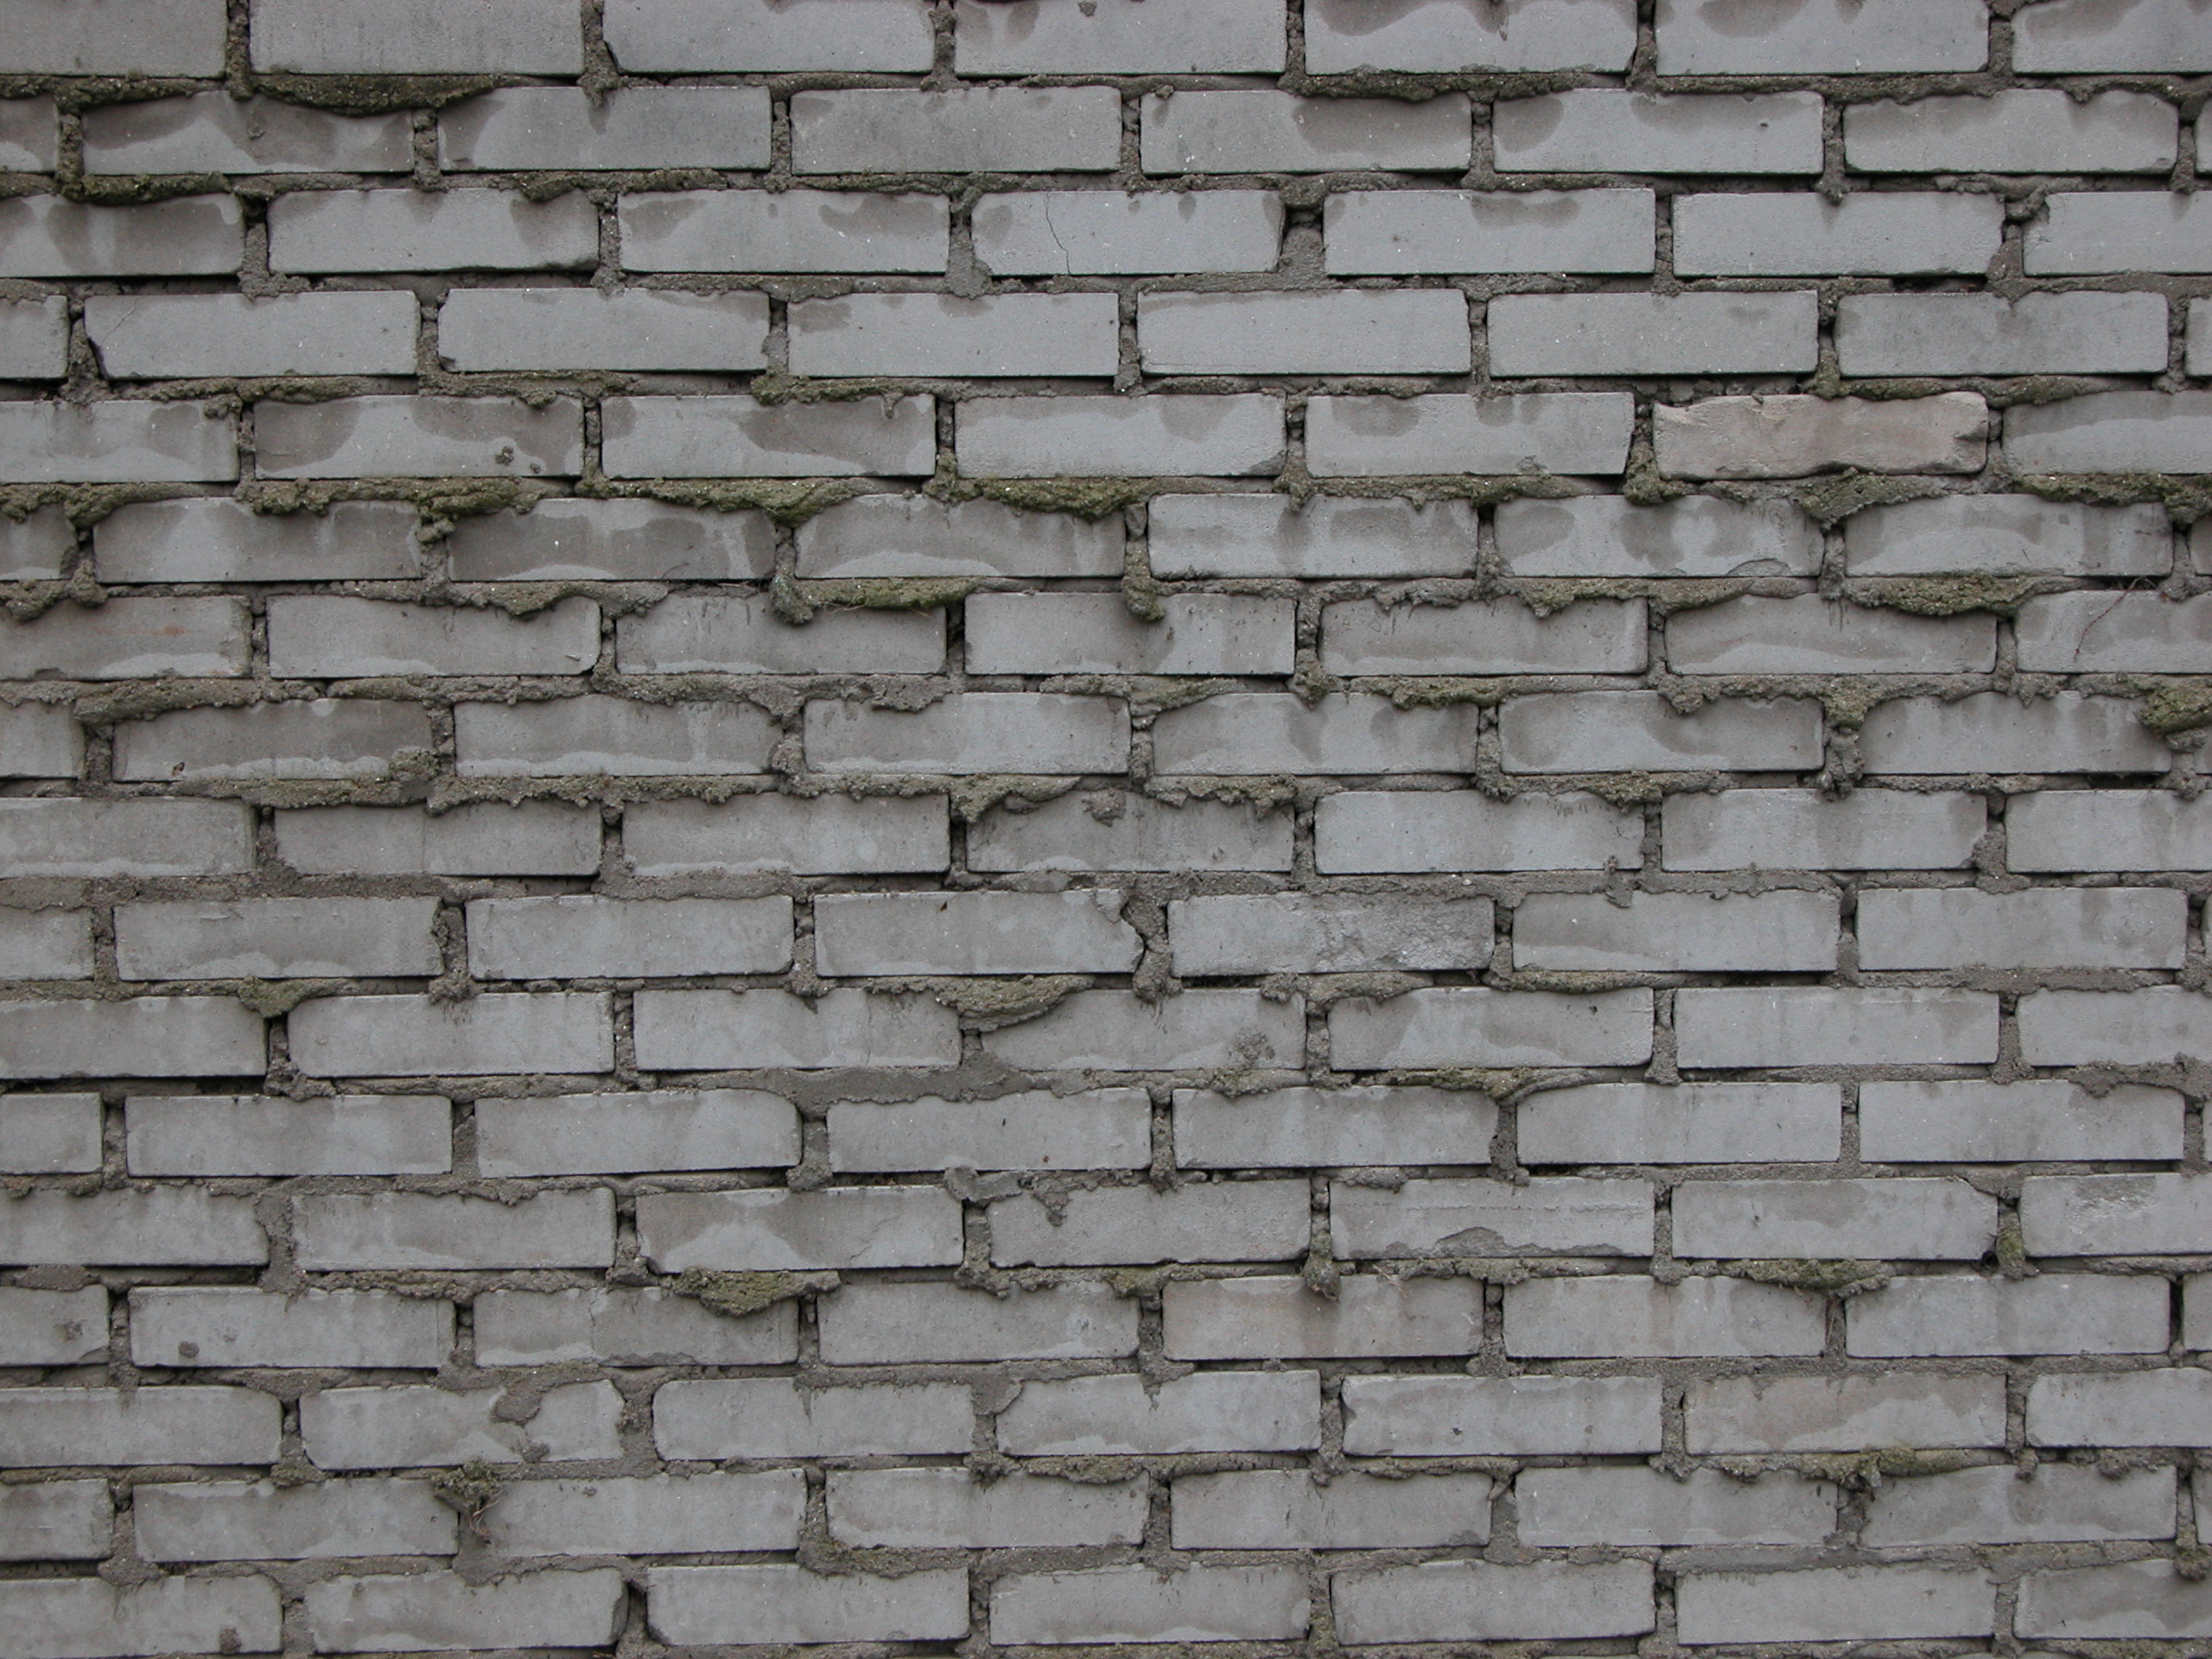 grey brick wall texture - DriverLayer Search Engine